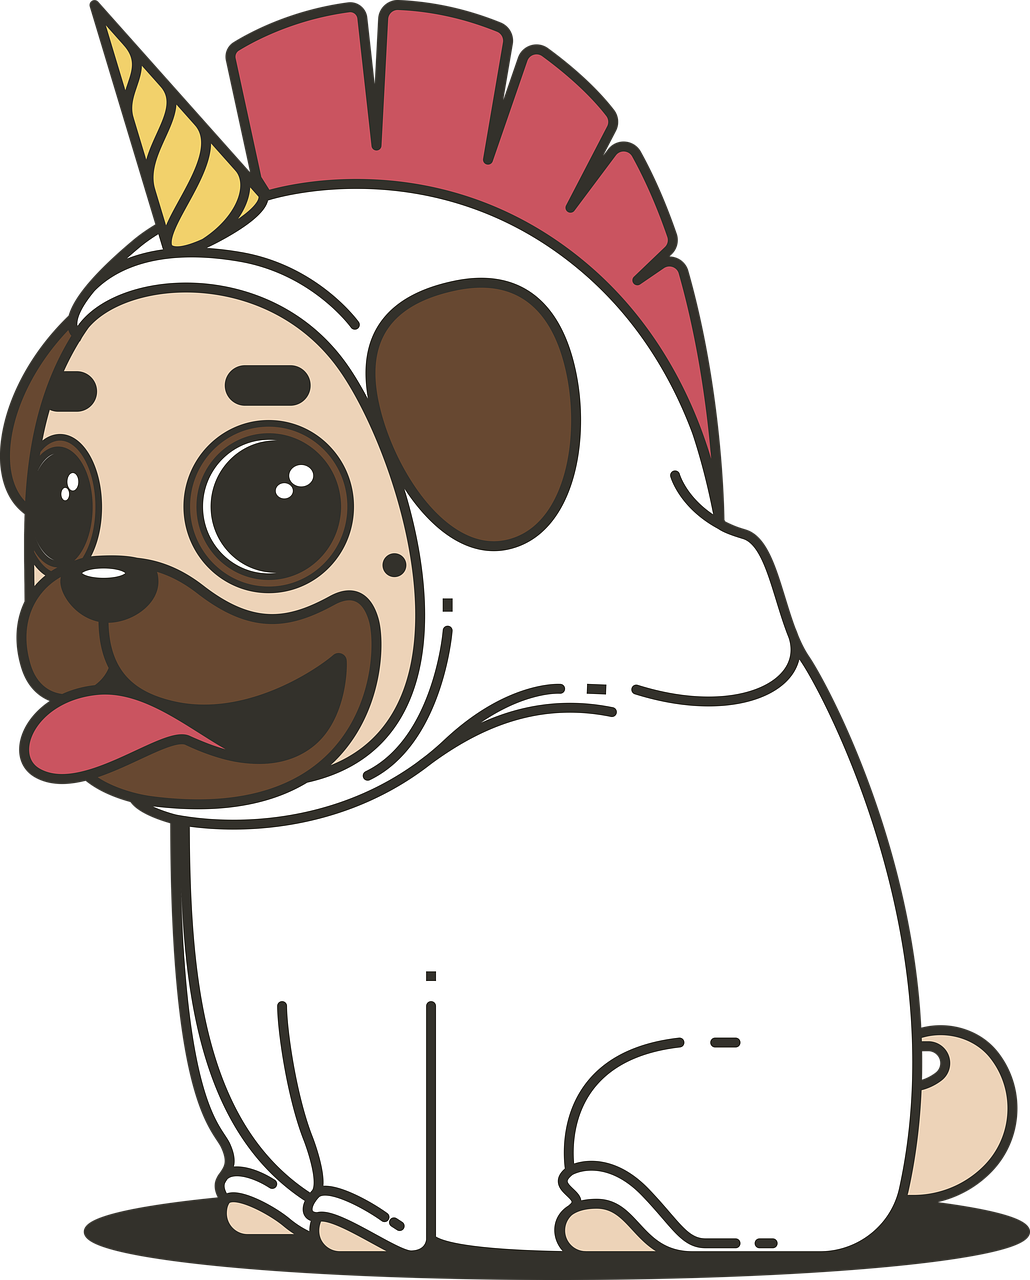 Pet clipart boy dog. Free image on pixabay